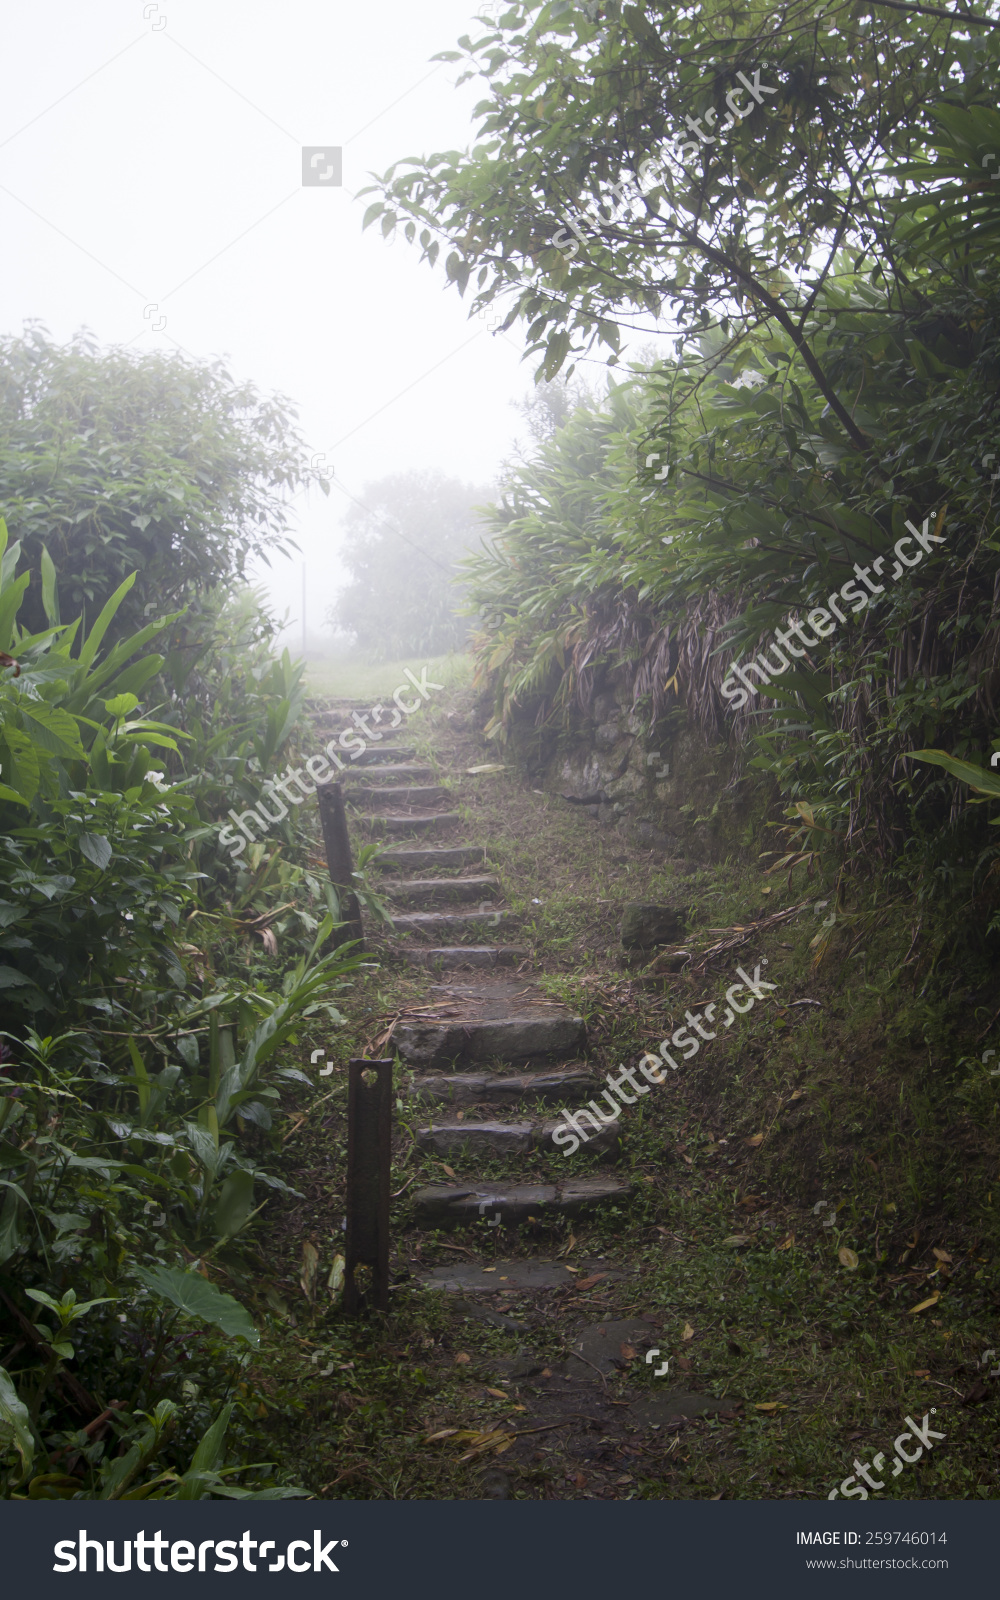 Stairs In The Middle Of A Forest In Paranapiacaba, Brazil Stock.